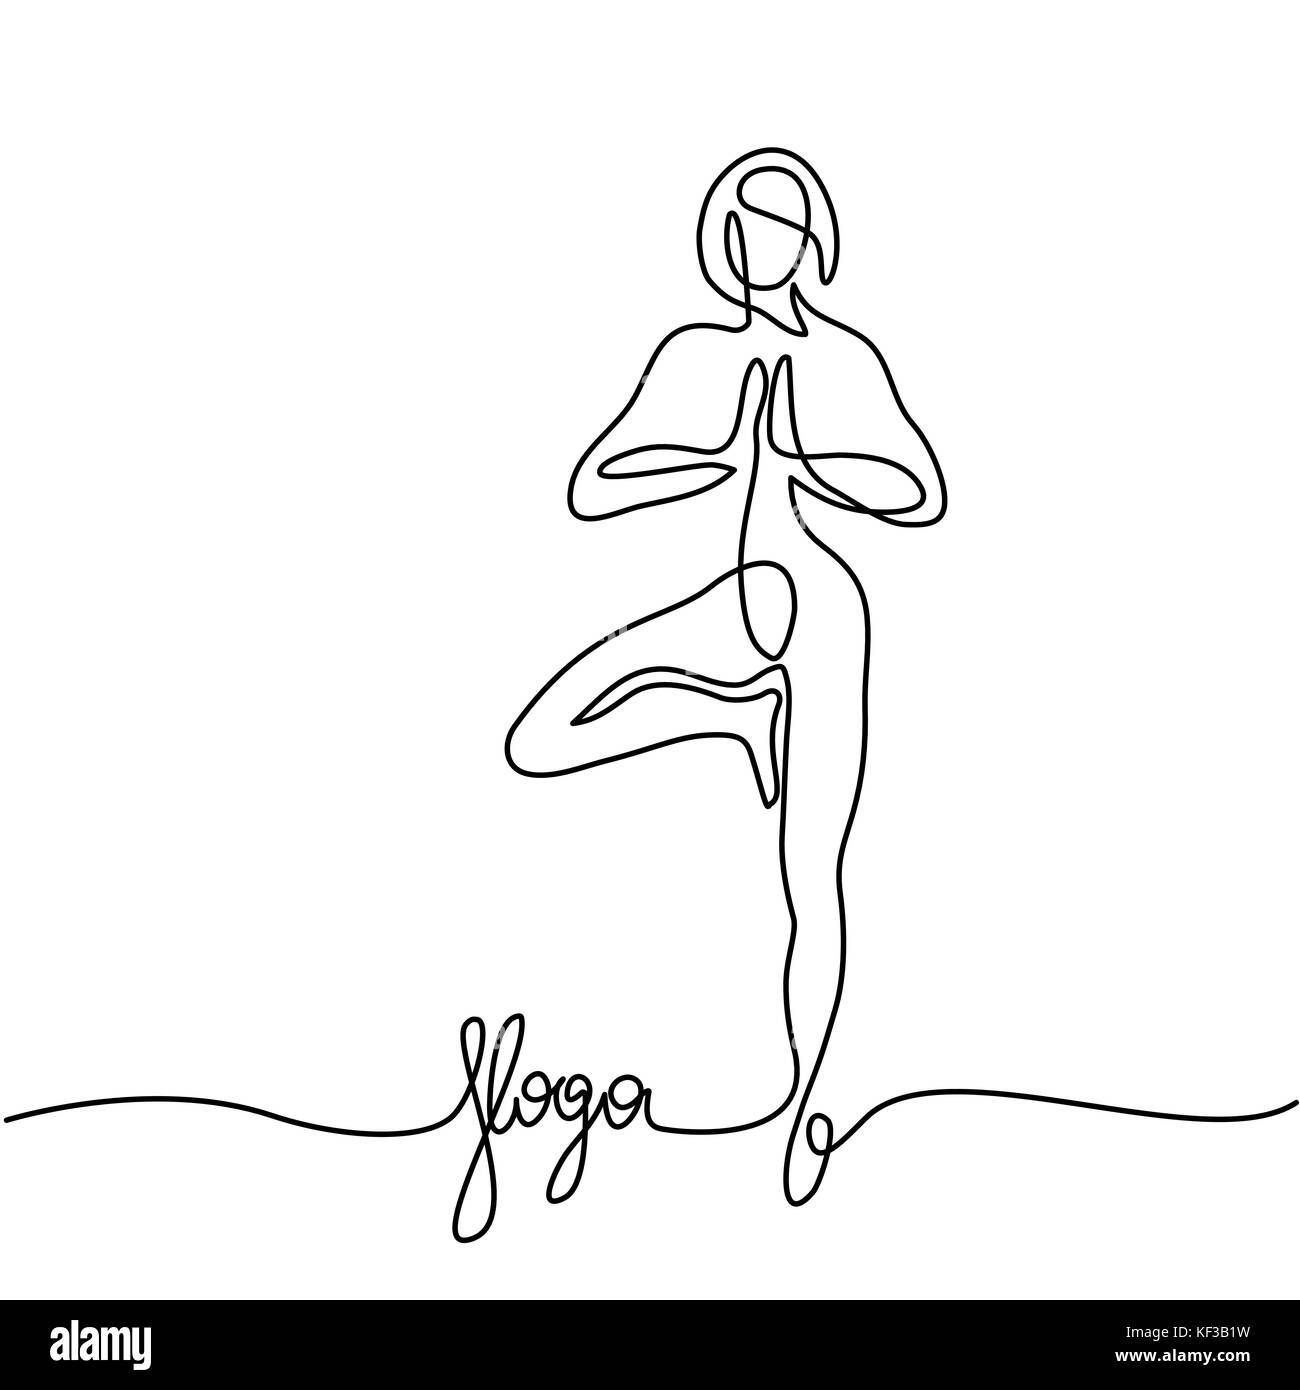 Woman doing exercise in yoga pose - Stock Image